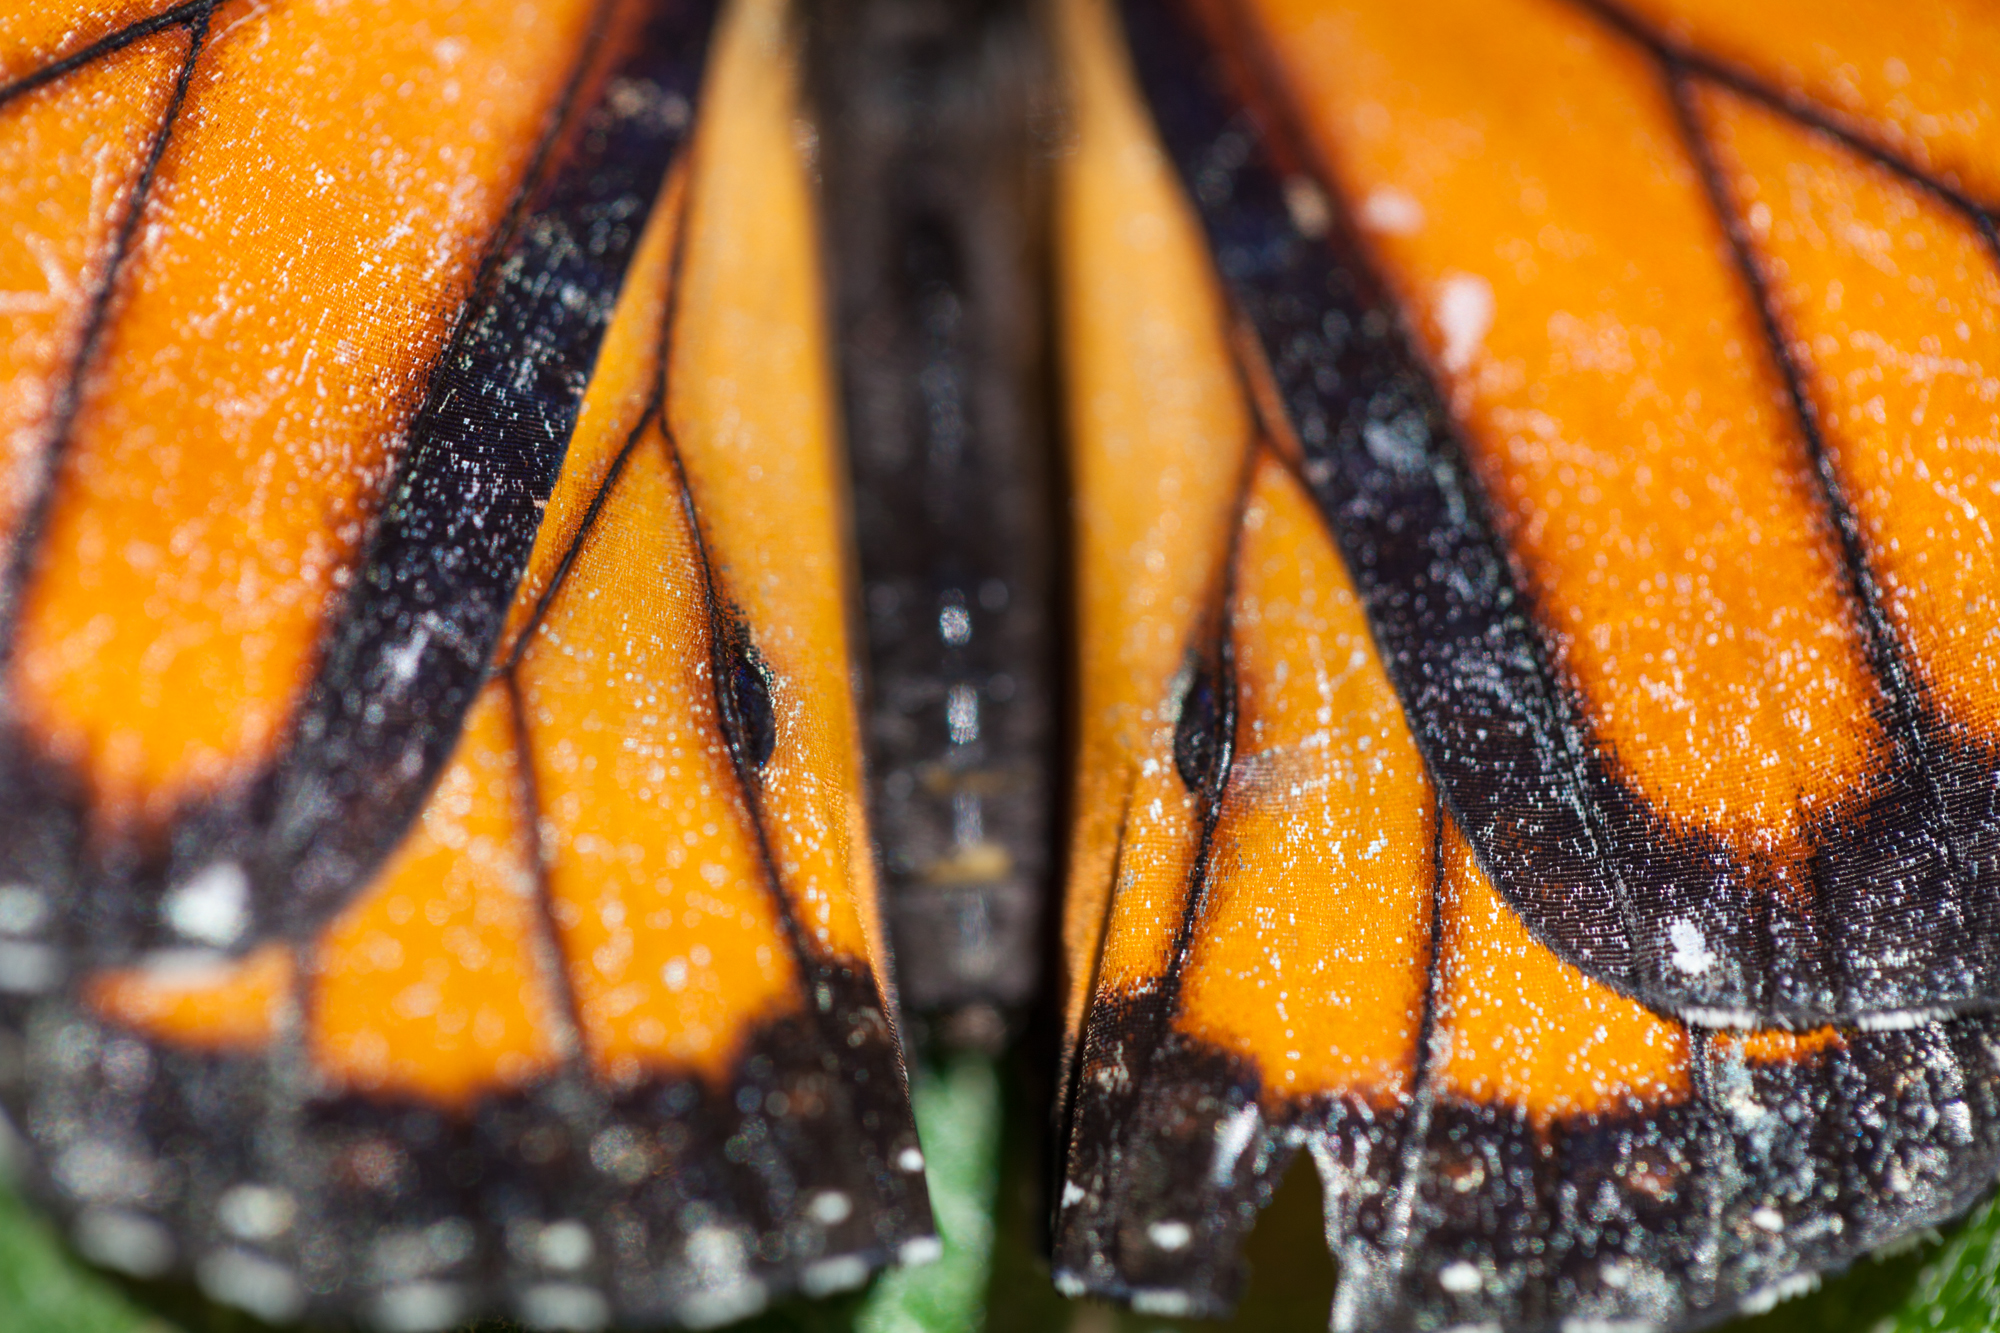 Close-up on a male monarch butterfly's wings ( Danaus plexippus ). You can tell this is a male, but the pheromone packets on the backs of the butterfly's wings.